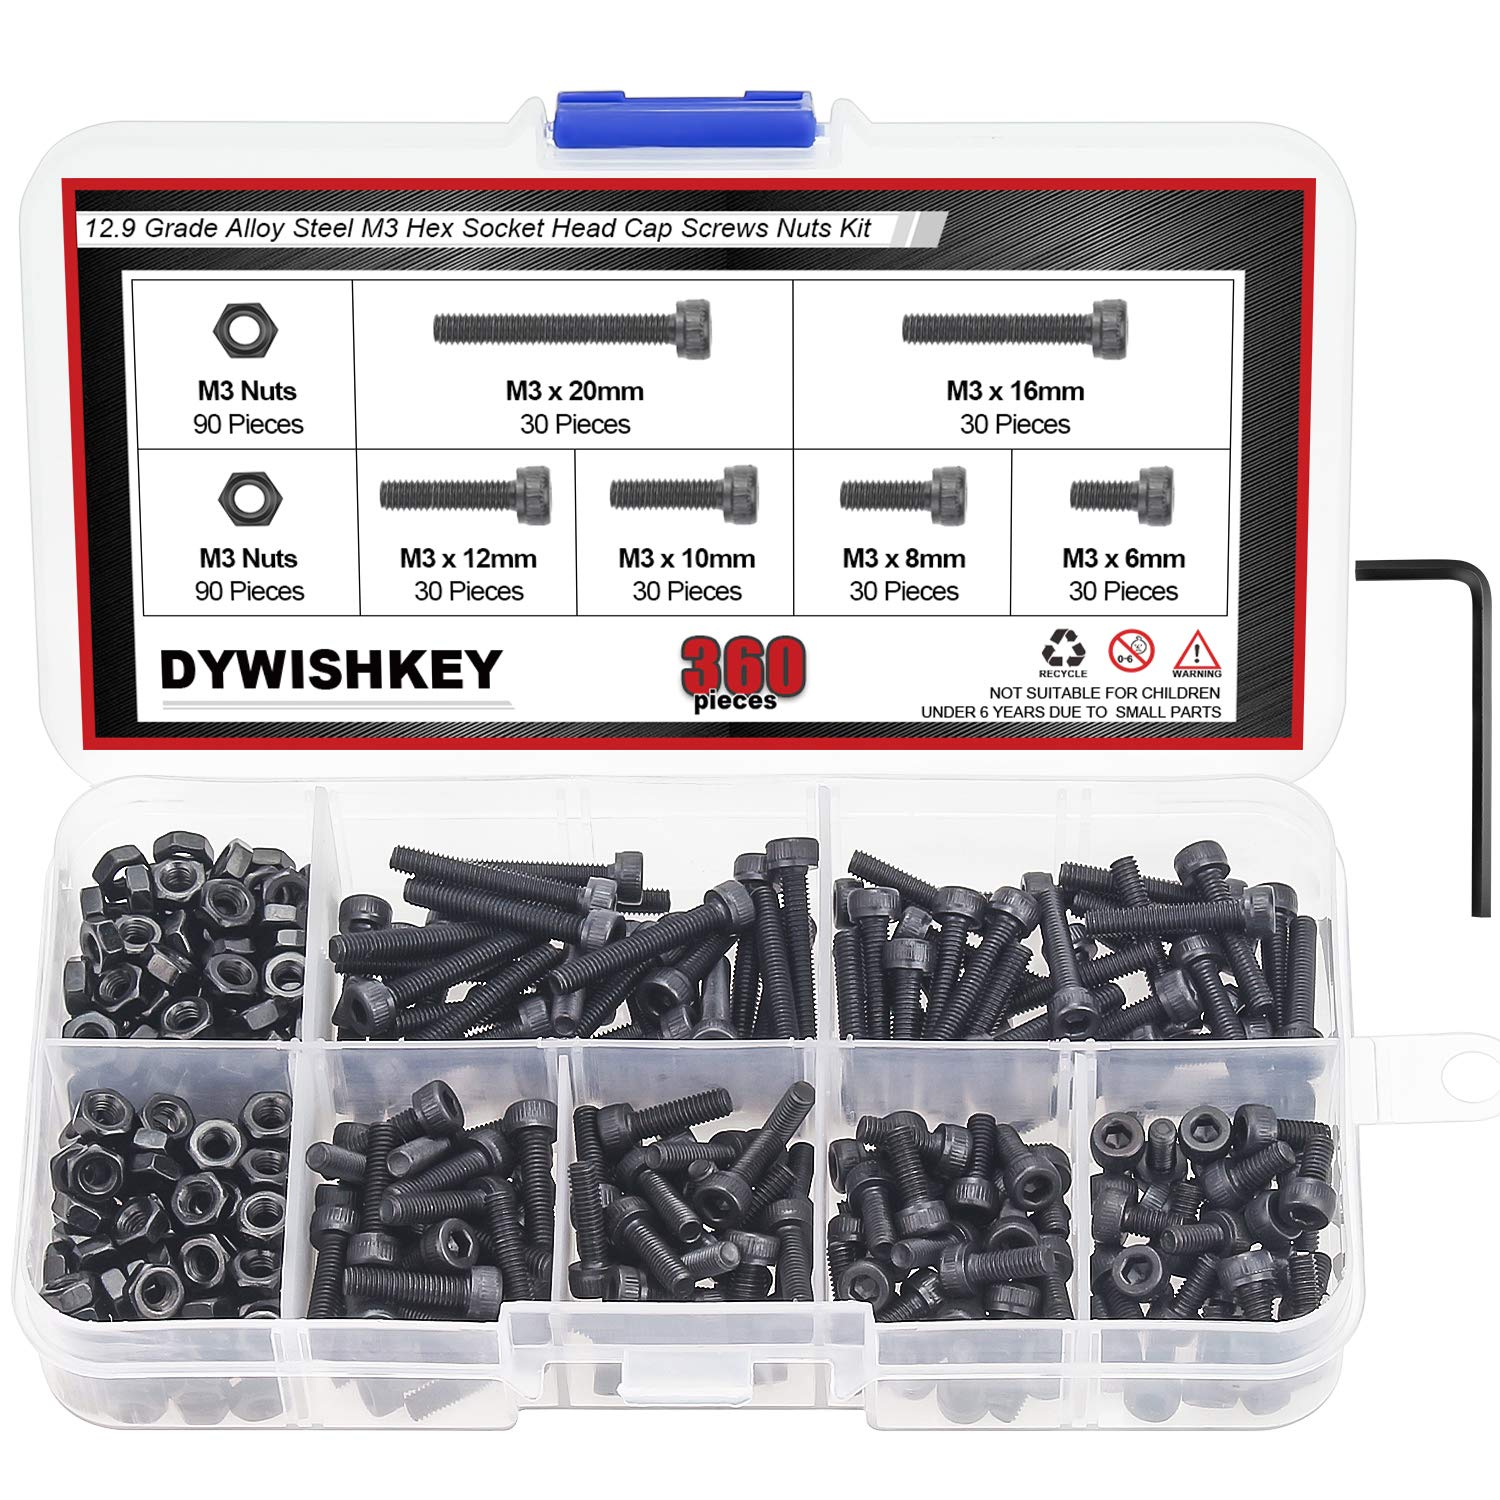 DYWISHKEY 360 Pieces M3 x 6mm/8mm/10mm/12mm/16mm/20mm, 12.9 Grade Alloy Steel Hex Socket Head Cap Bolts Screws Nuts Kit with Hex Wrench